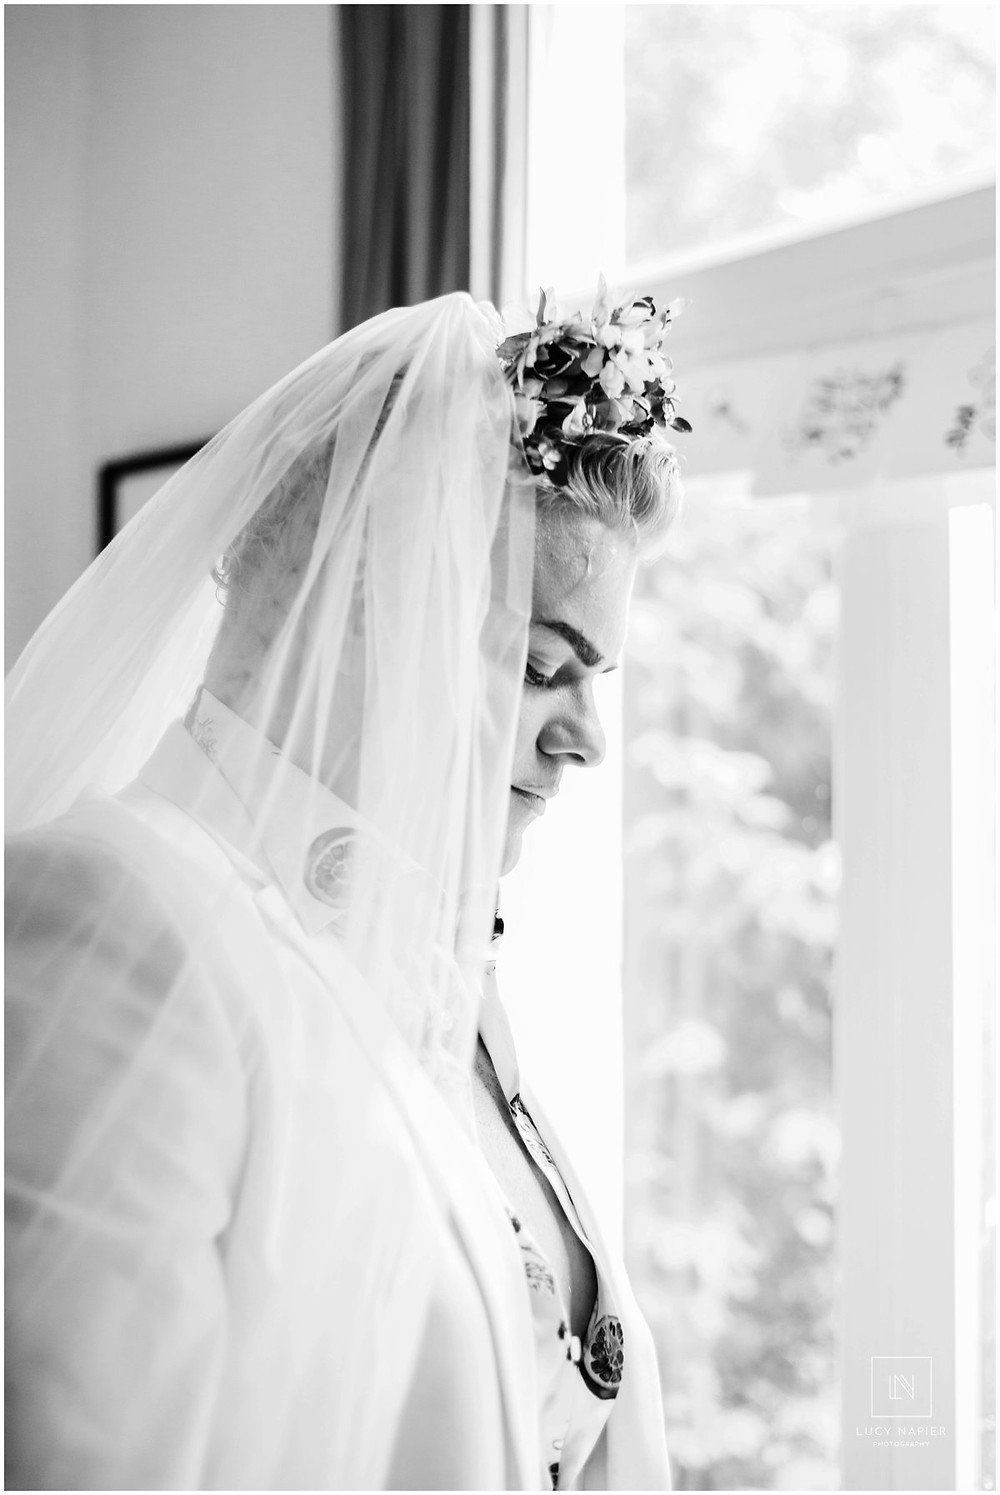 black and white image of a man dressed as a bride